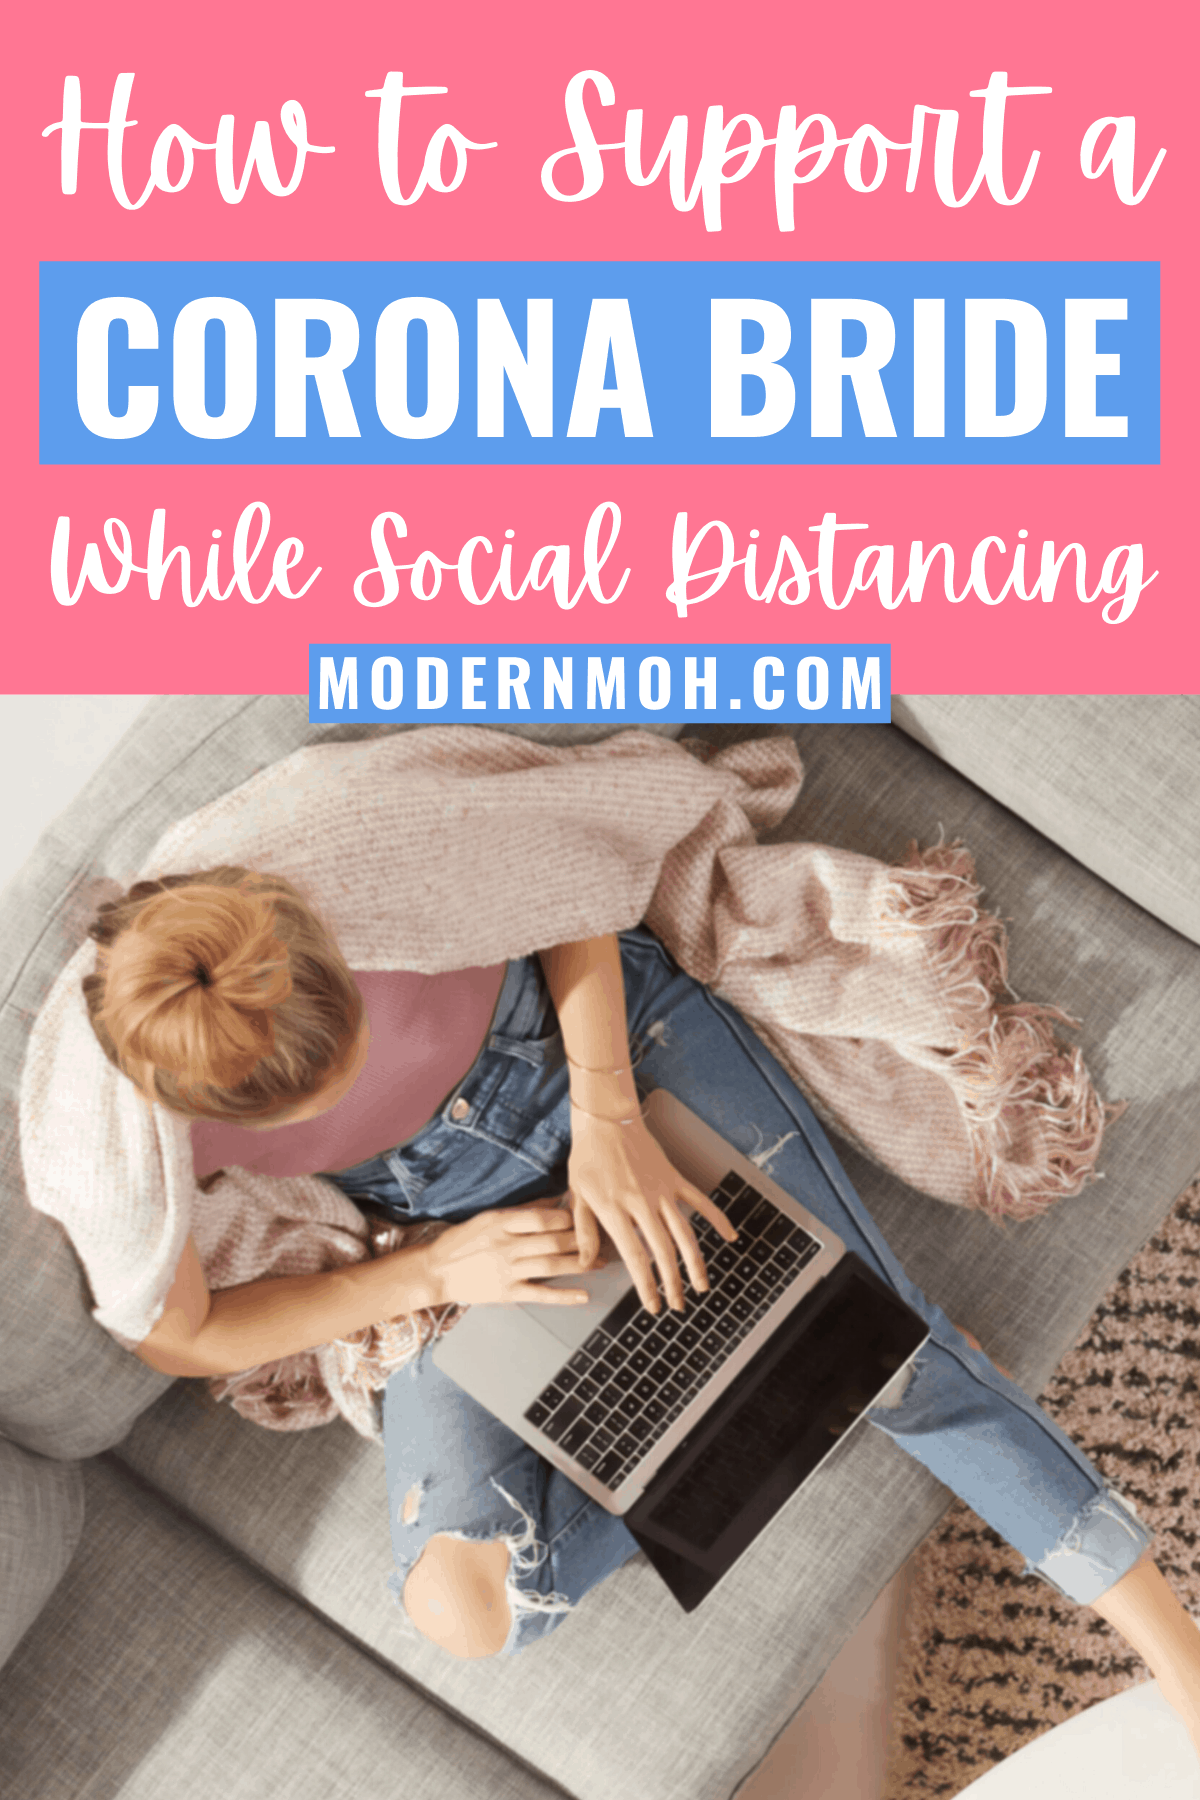 3 Ways to Support Your Bride-to-Be During Social Distancing